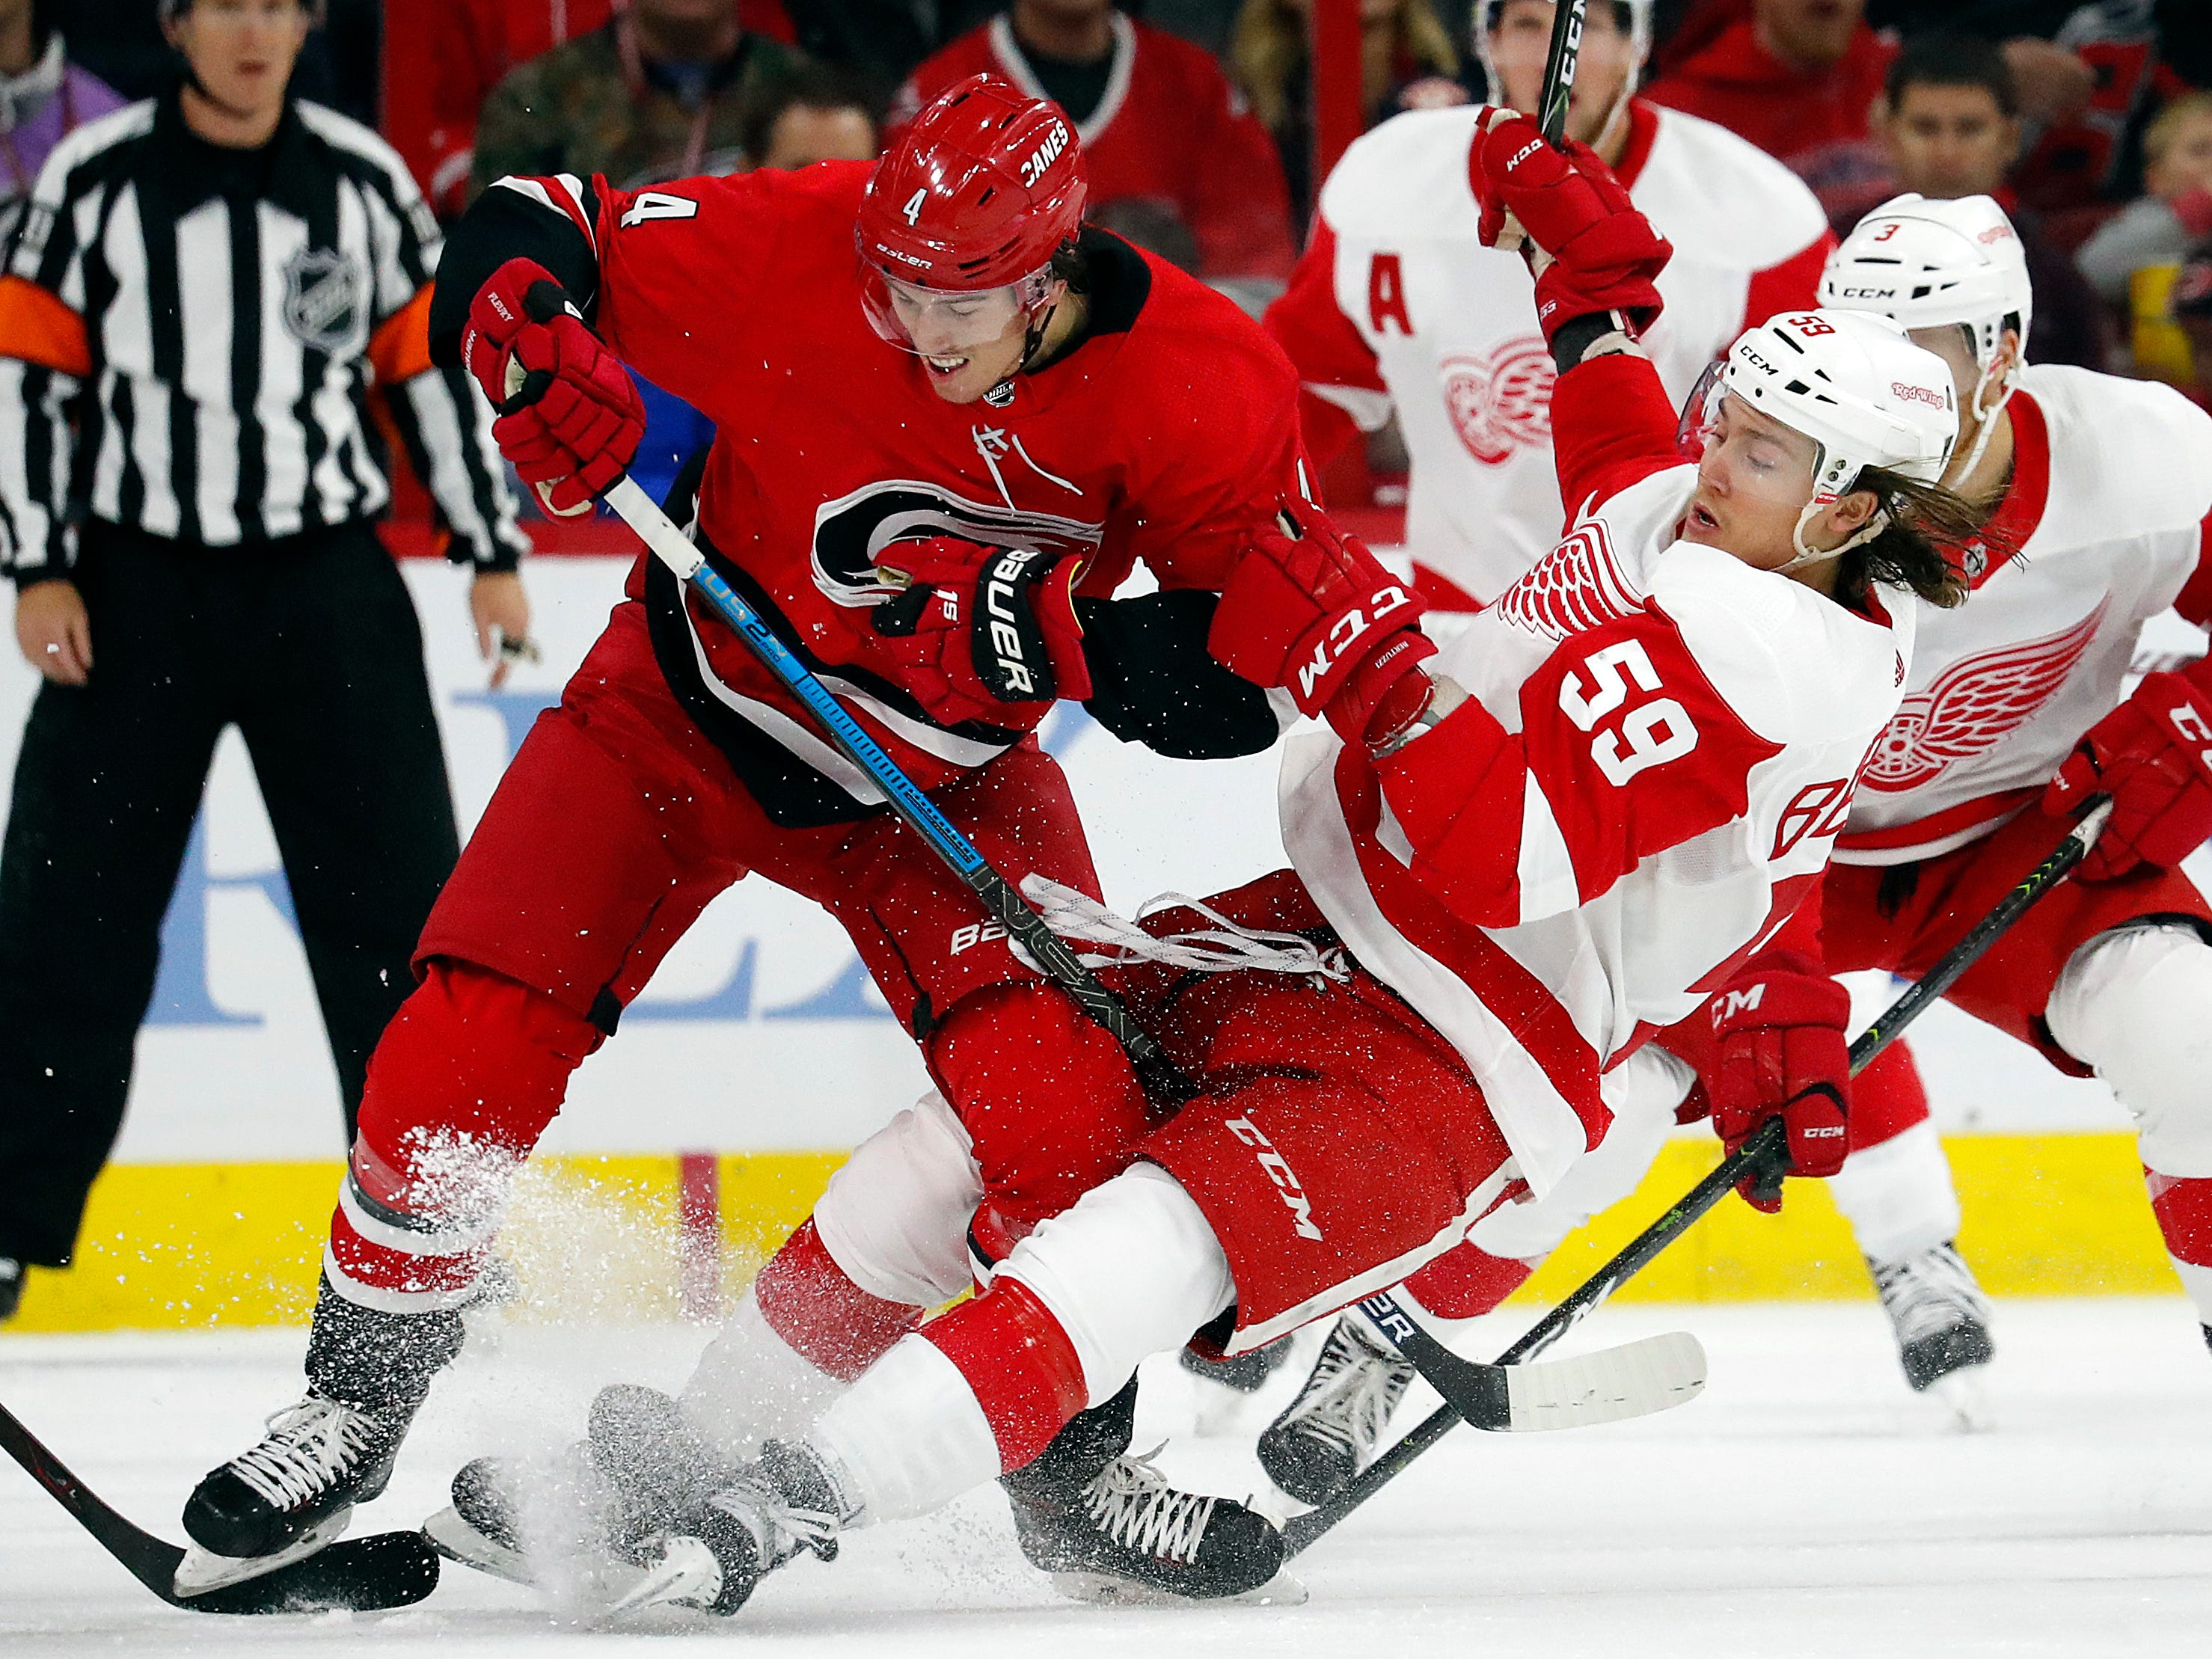 Carolina Hurricanes' Haydn Fleury (4) collides with Detroit Red Wings' Tyler Bertuzzi (59) during the first period of an NHL hockey game Saturday, Nov. 10, 2018, in Raleigh, N.C. The Red Wings won the game, 4-3 in a shootout.